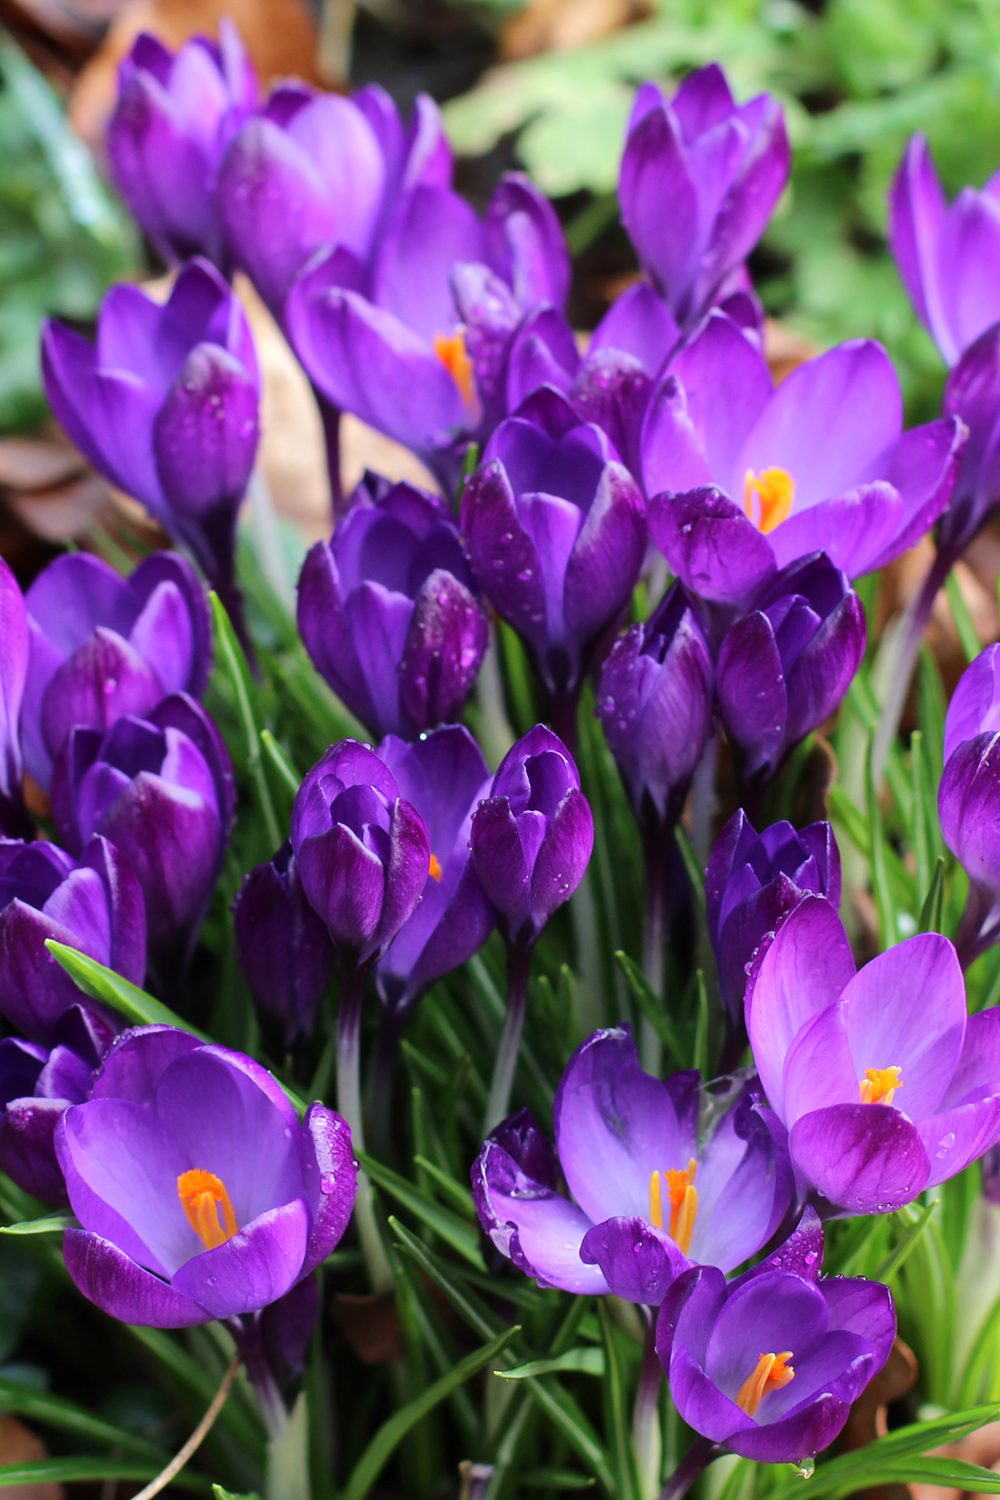 Purple crocuses in the British countryside - UK luxury travel blog